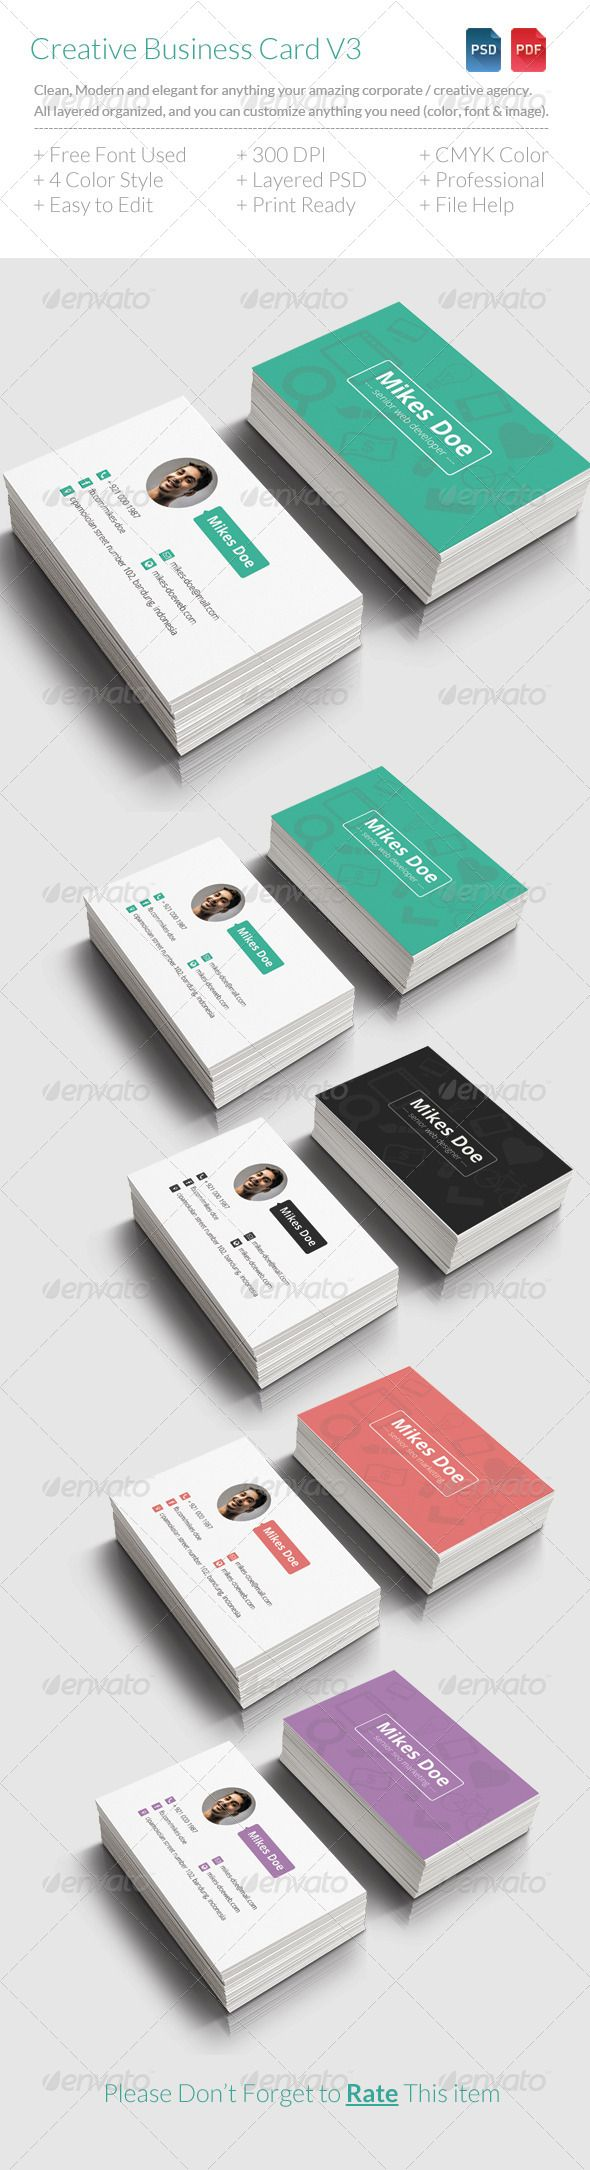 Creative Business Card V3 Creative Business Card V3 is simple, clean, flat style and elegant for anything creative agency / corporate ,creative people and freelancer. All layers can be changed, you can replace all the information on the business card in easy way with just a few clicks. Download at http://graphicriver.net/item/creative-business-card-v3/7480692